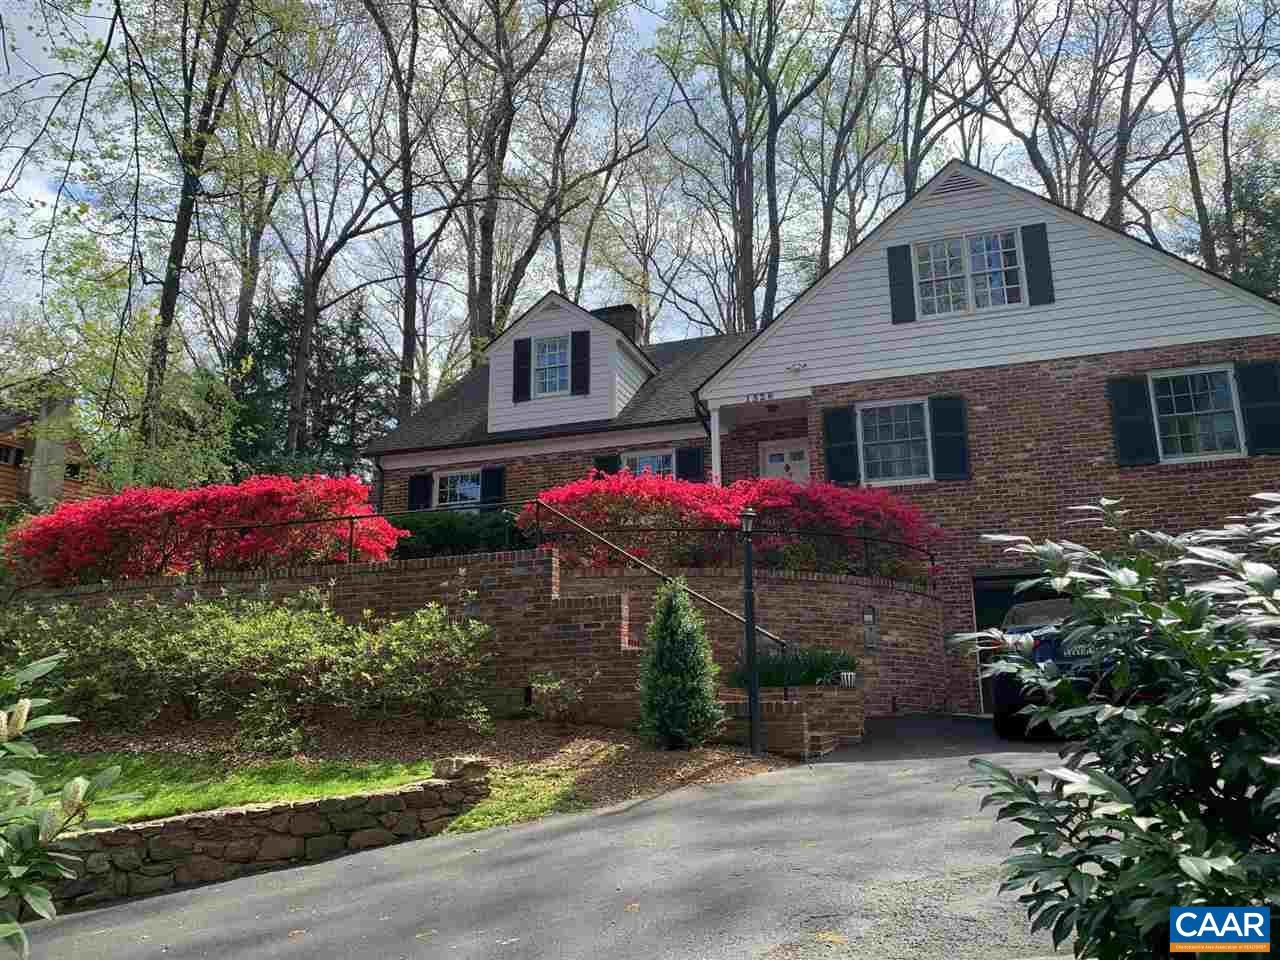 Prime location in Meadowbrook Hills close to UVA, hospitals, shopping & dining. The 6 bedroom home on .44+ acres features many upgrades (terrace level apartment, heated driveway, 3 car garage, 3 heating/cooling units w/ home divided into 5 zones for maximum comfort & efficiency, into extensive landscaping w/ seating, dining, waterfalls, antique millstones, fireplace, patios, cistern & more!), fireplaces, walk in closets, man cave/wine cellar, 2 bedrooms with ensuite & beautiful hardwood floors. Terrace Level:  1 Bedroom Apartment w/ Living & Dining Rooms, Fireplace, Kitchen, Laundry, Storage, Heated/A/C, Inside Access, Outside Entrance, Partial, Slab, Walk Out, Windows